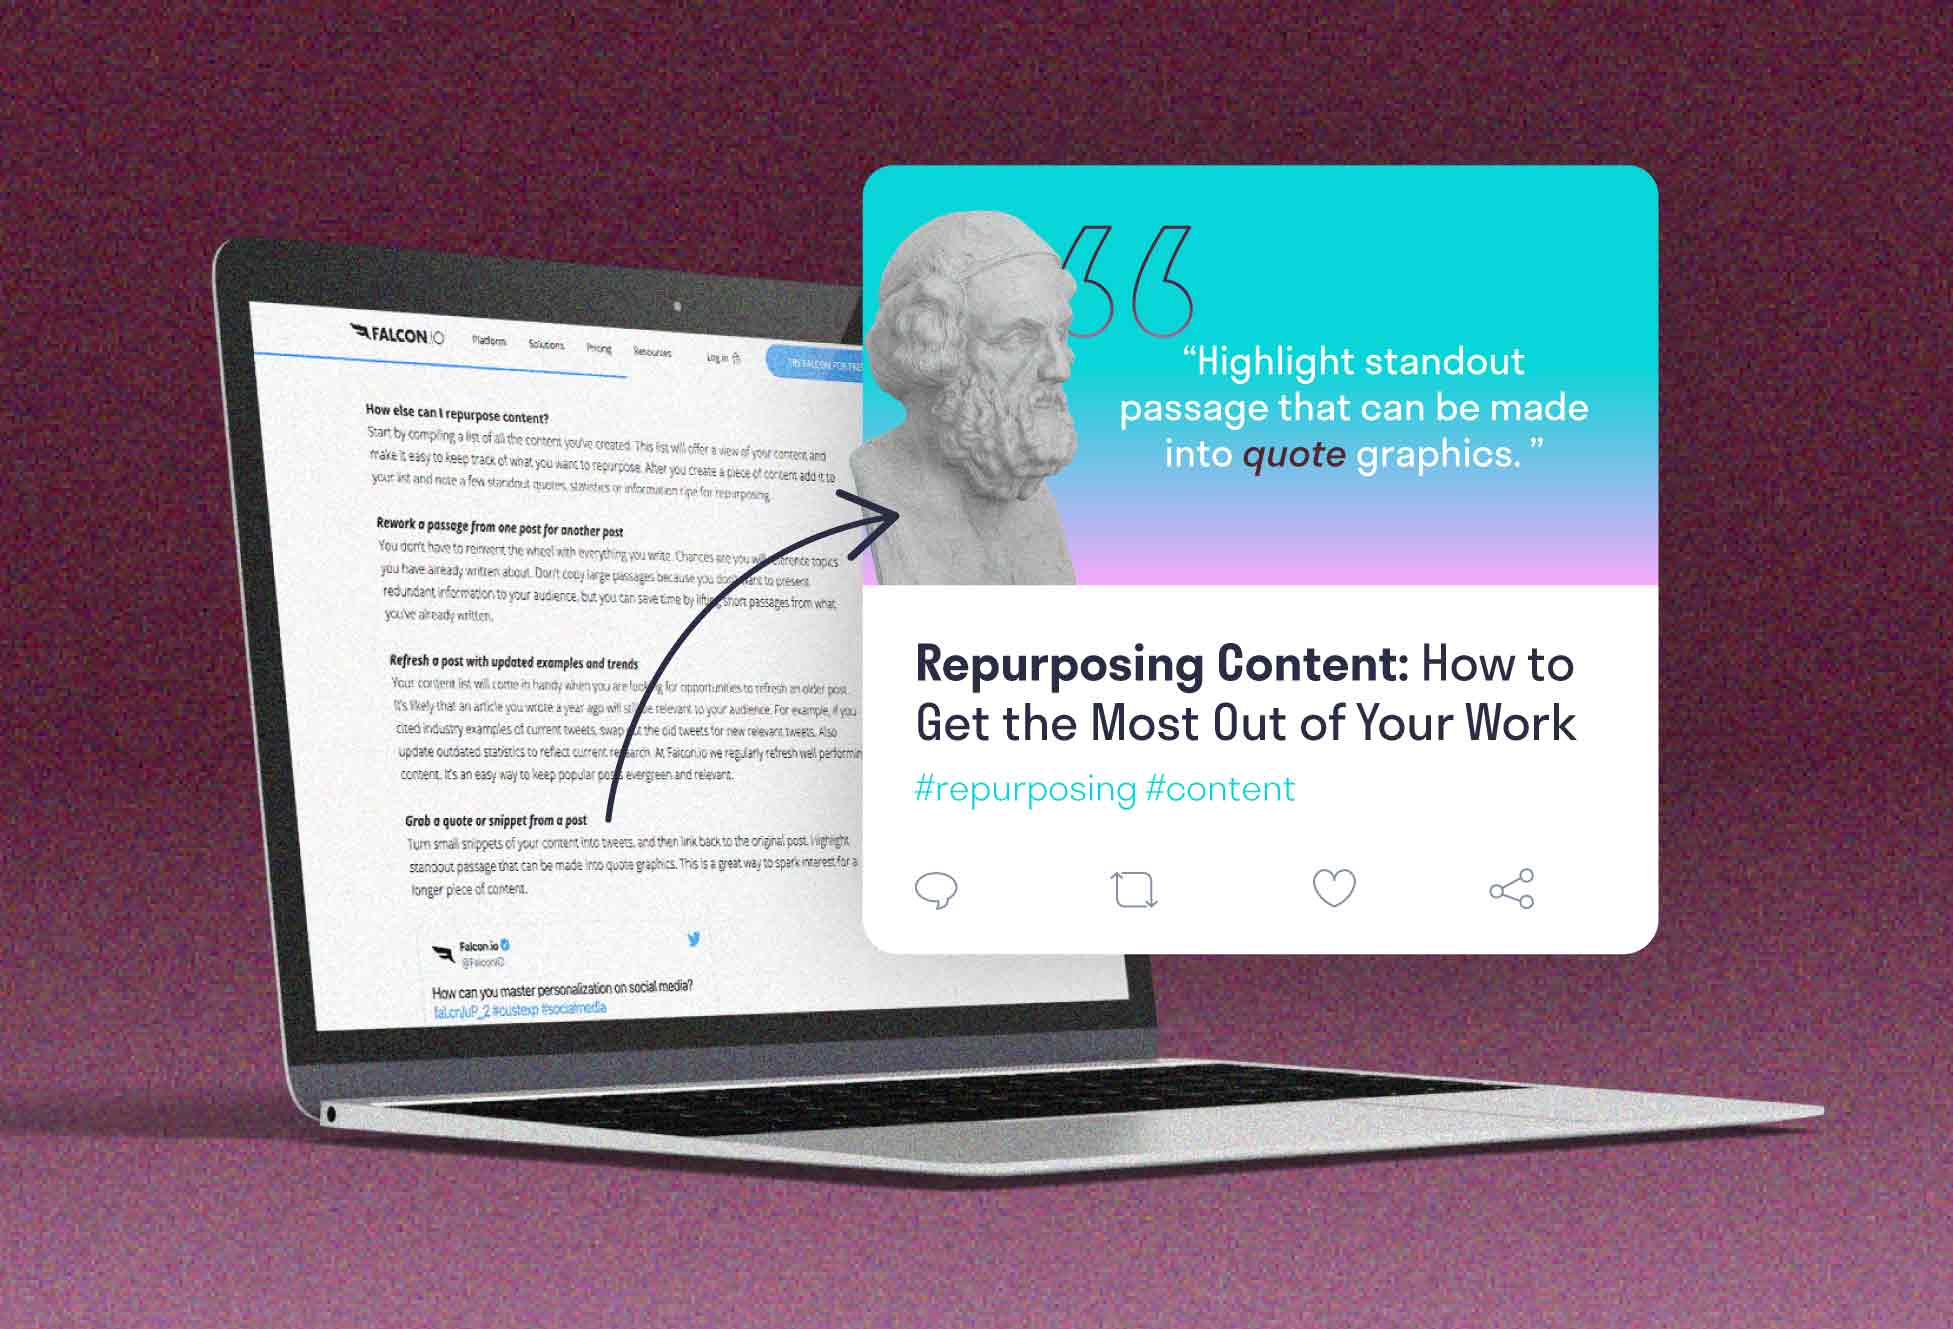 Repurposing Content: How to Get the Most Out of Your Work.